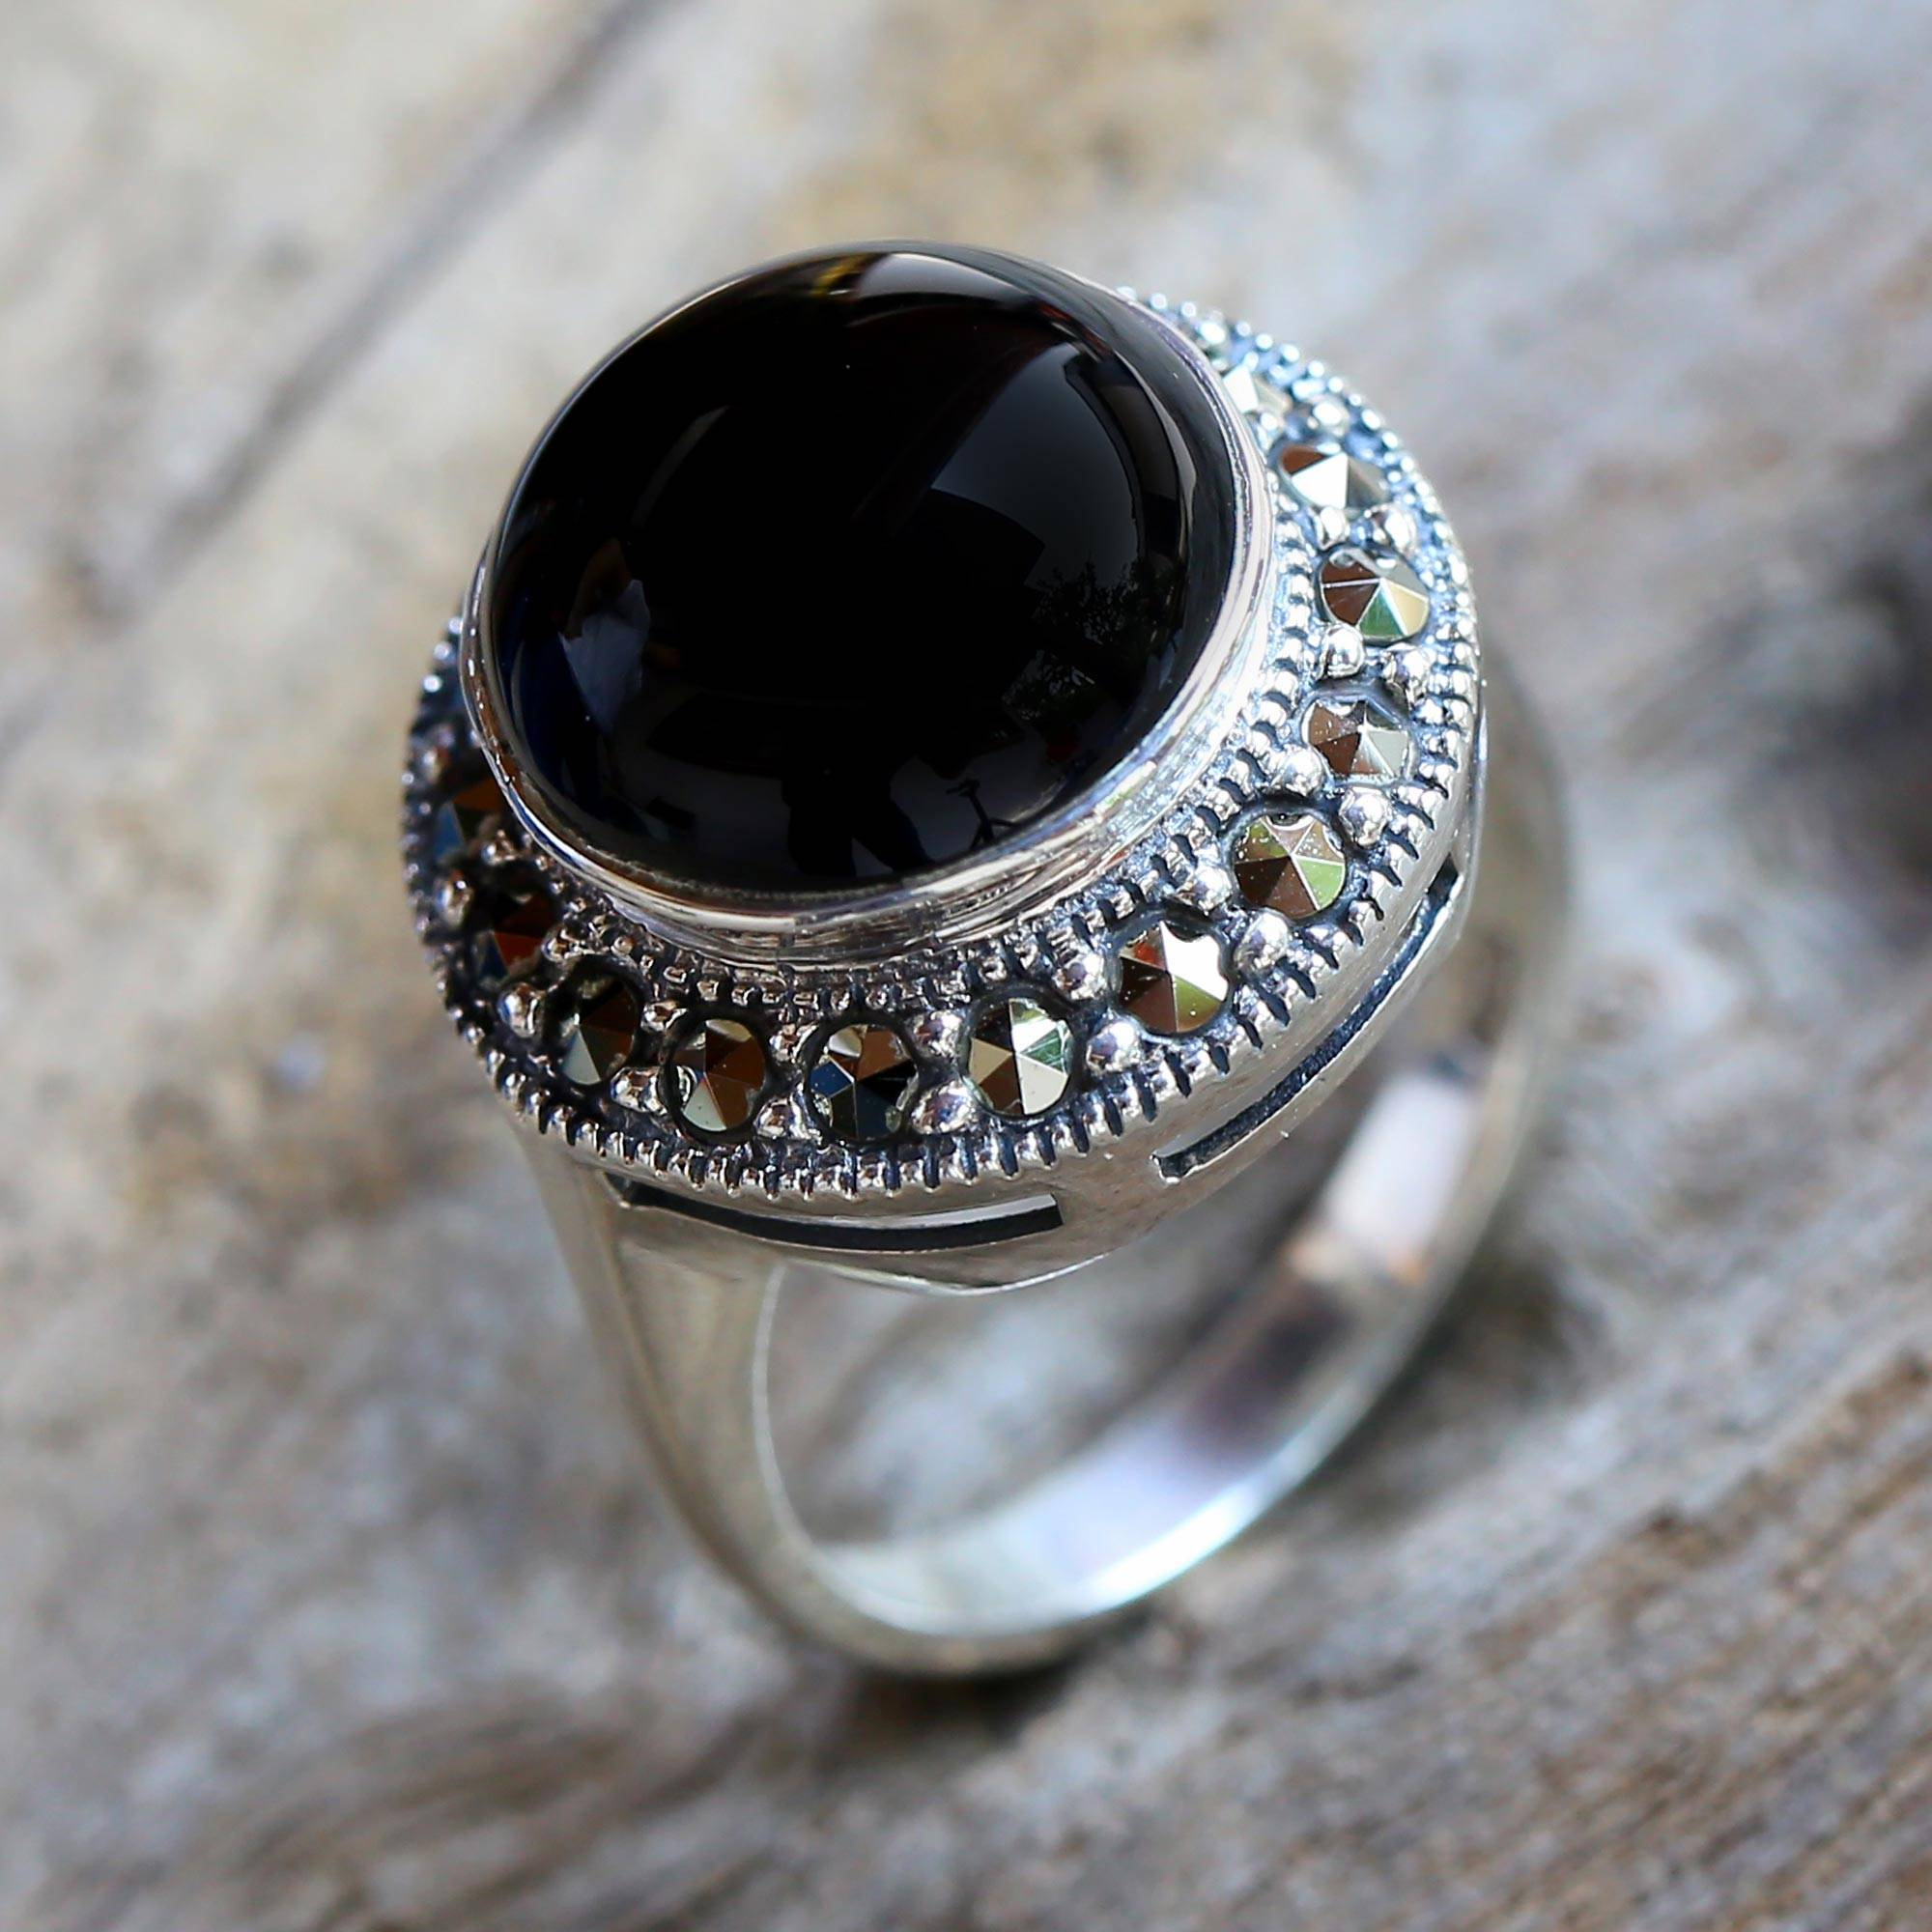 fancy onyx engagement wedding ring of pinterest diamond mens promise black for rings accessories gallery